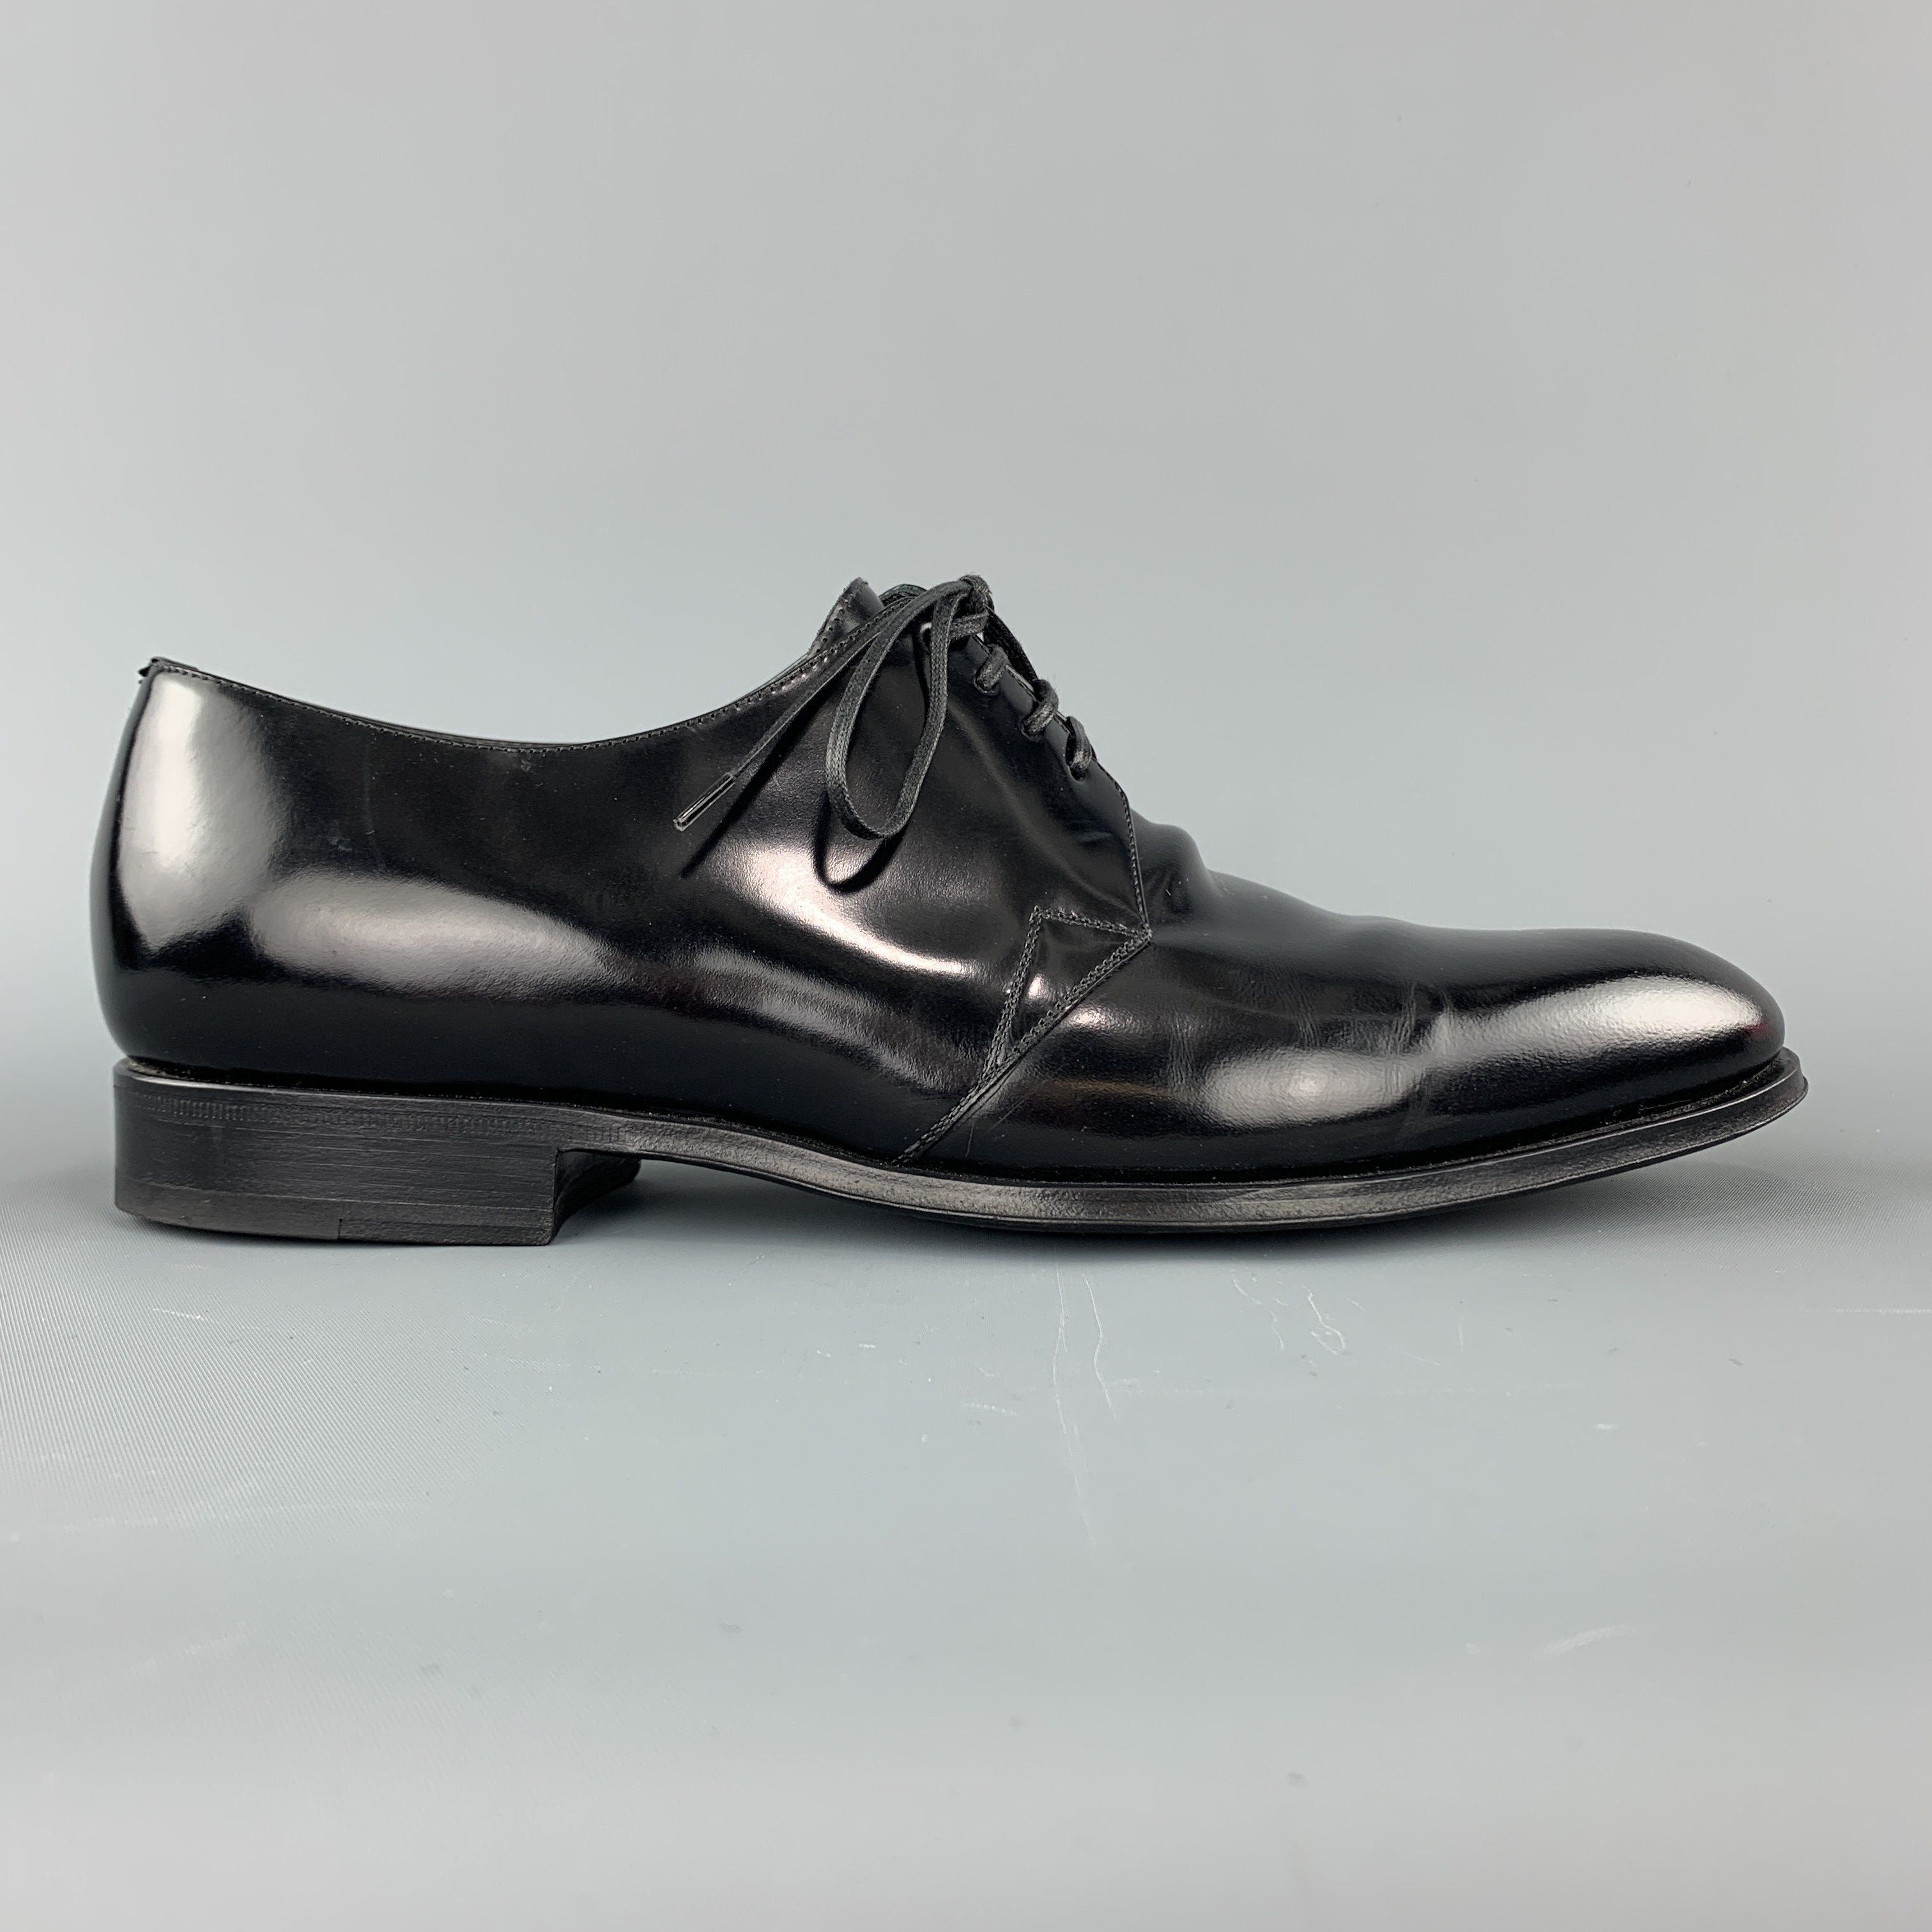 Dior Homme Size 8 Black Pointed Leather